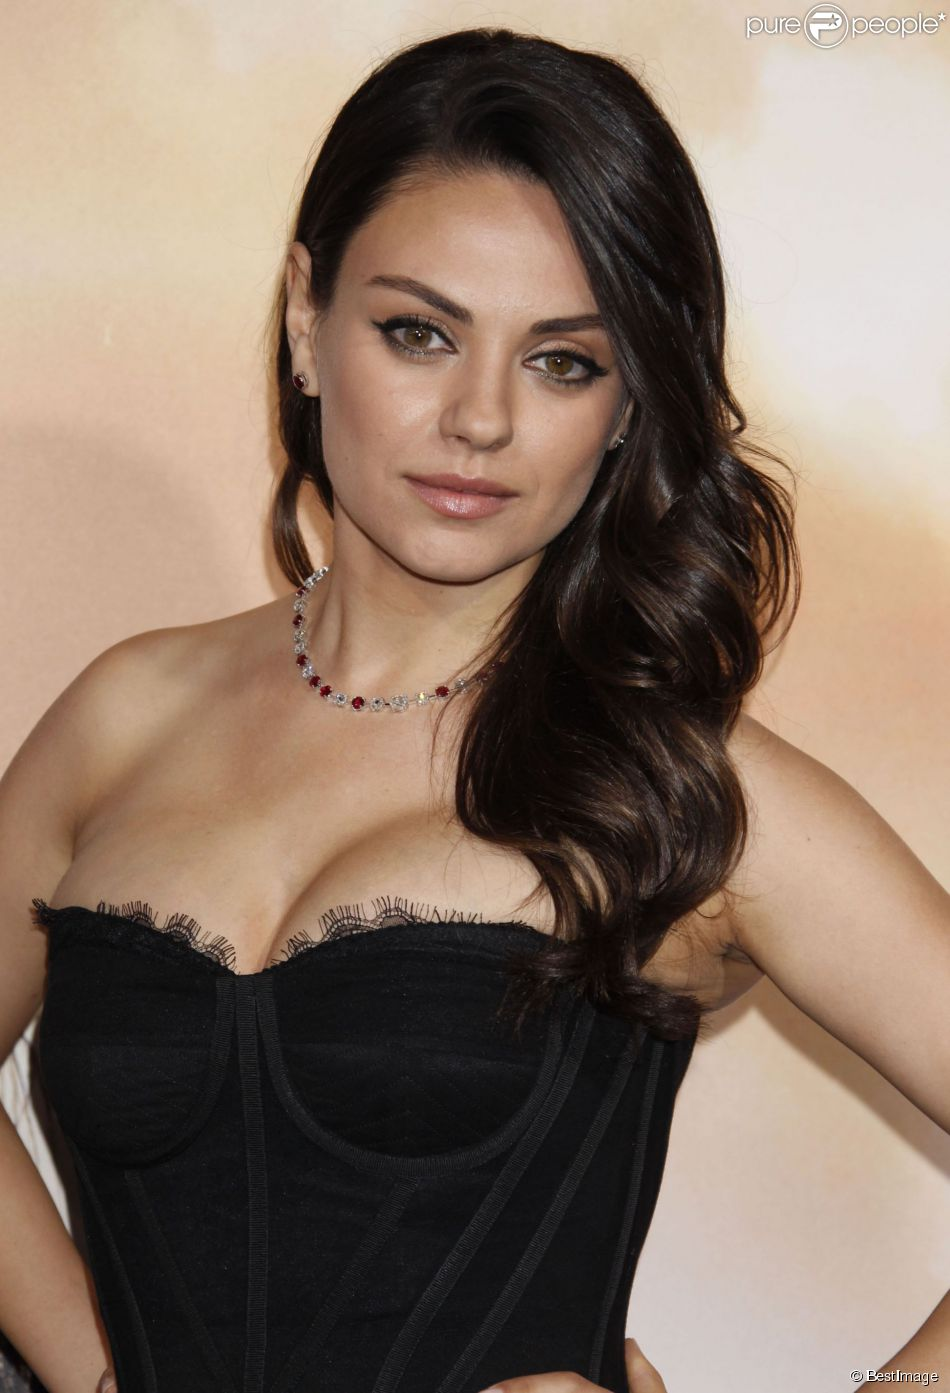 mila kunis soulag e le 39 39 dangereux 39 39 harceleur en fuite a t retrouv purepeople. Black Bedroom Furniture Sets. Home Design Ideas